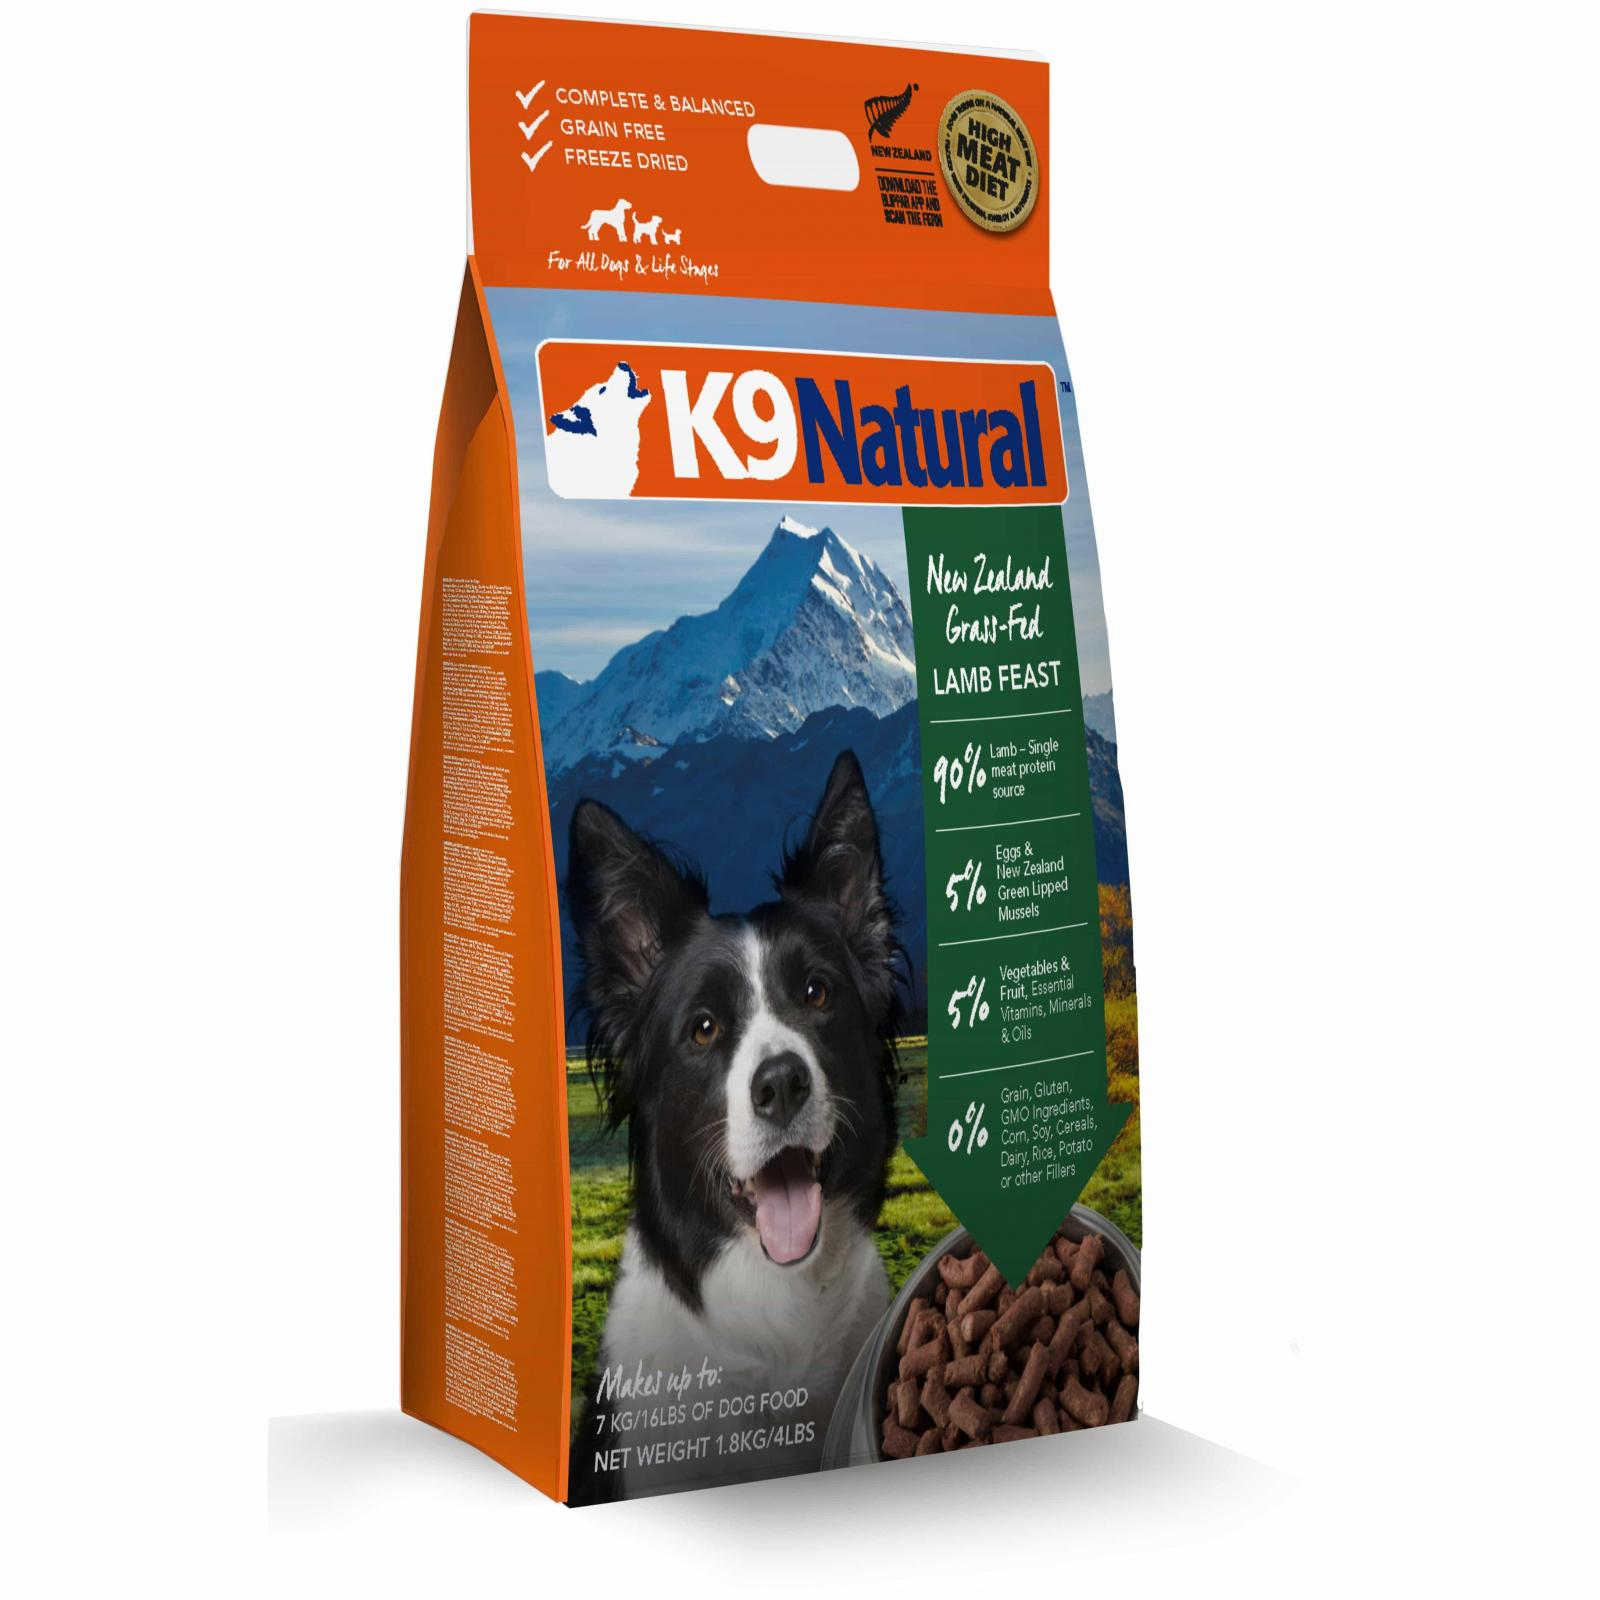 K9 Natural K9 Natural Lamb Feast Freeze Dried